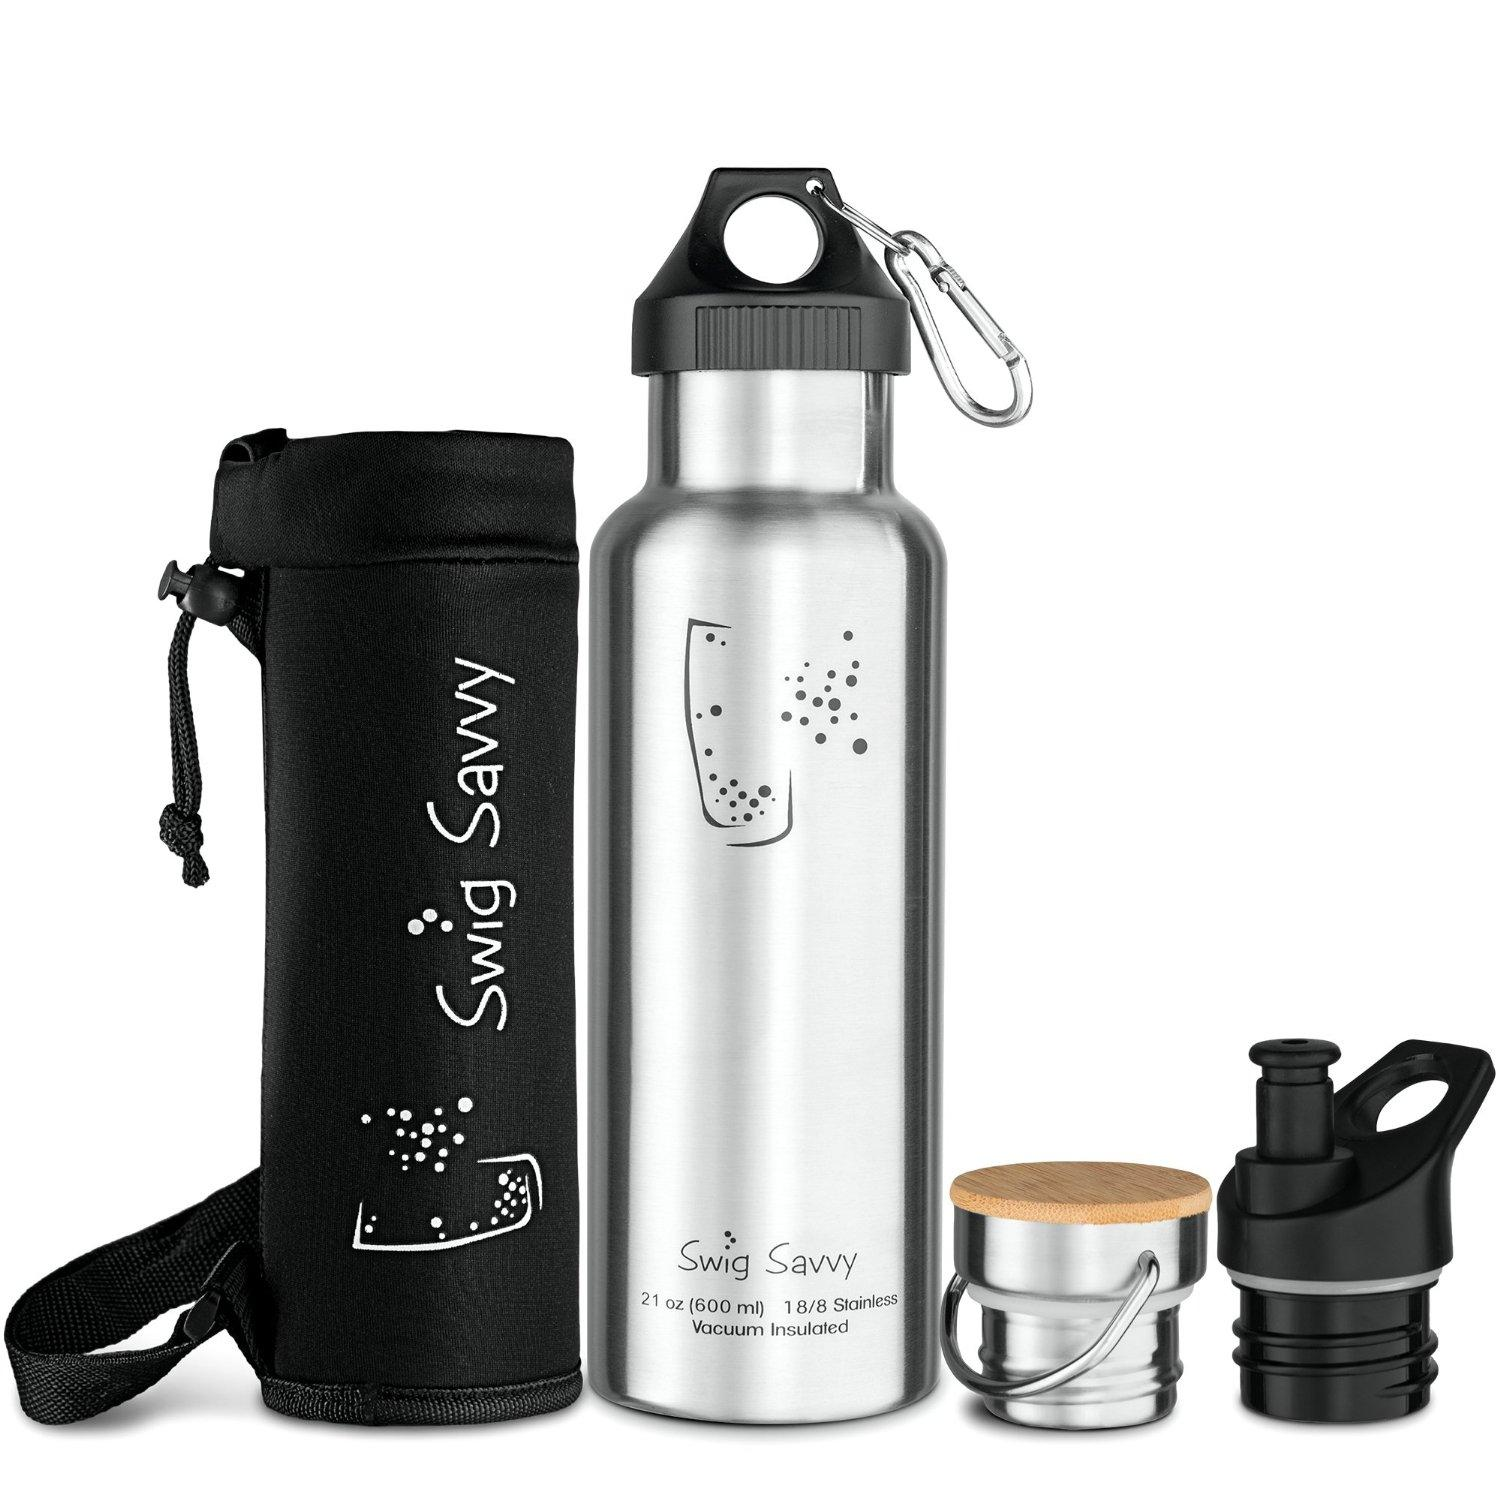 Swig Savvy's Stainless Steel Vacuum Insulated Water Bottle